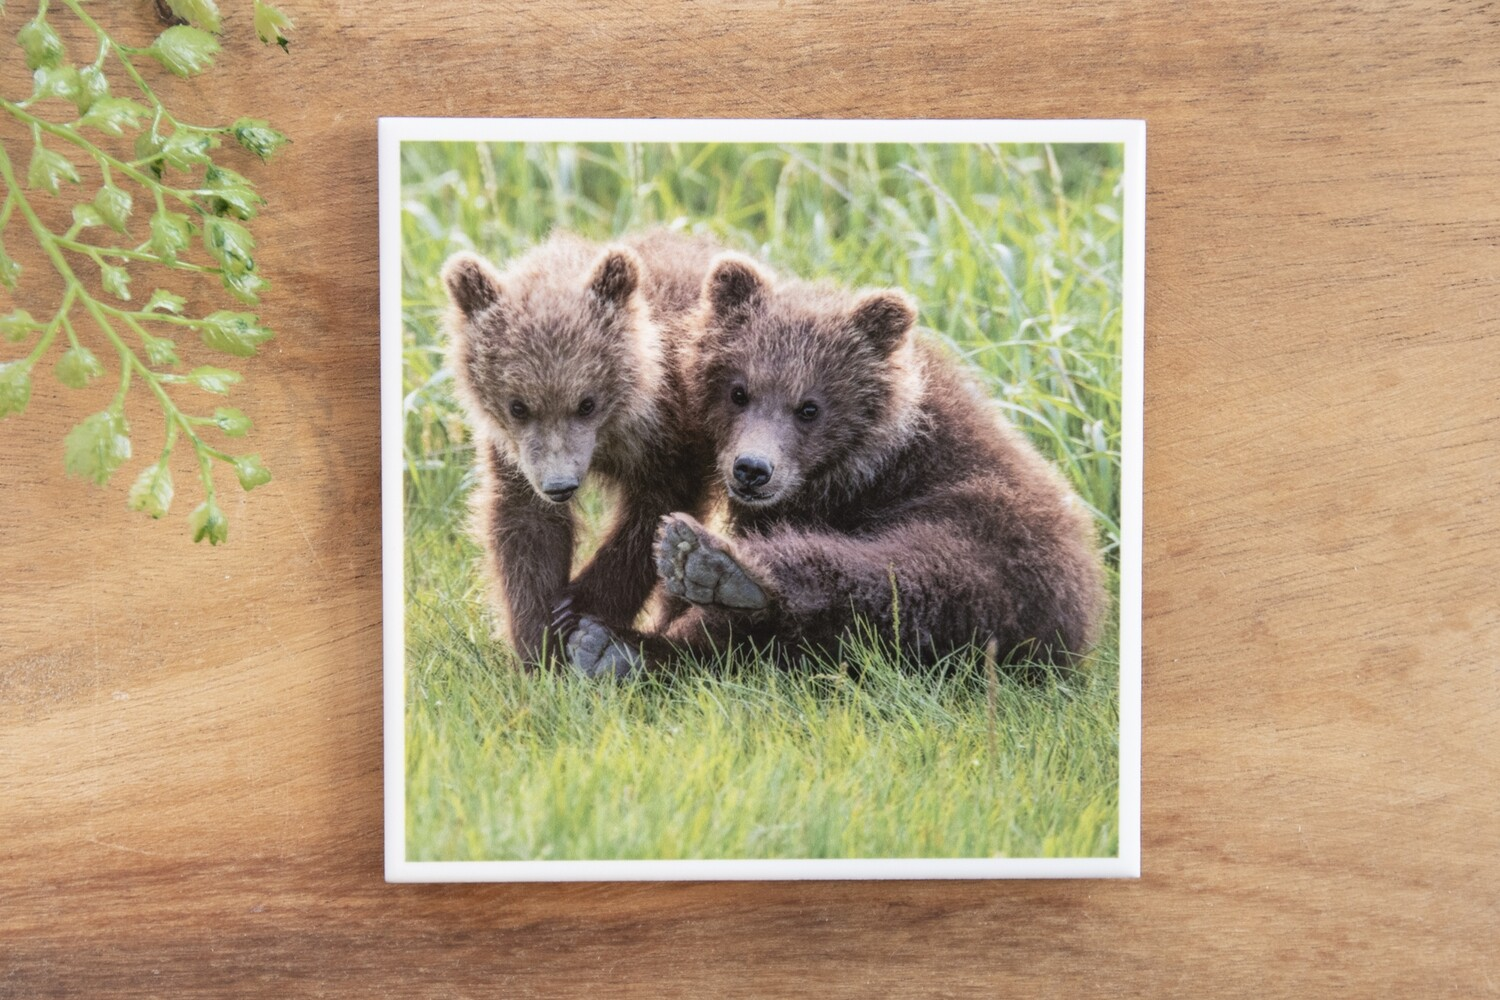 Two Cubs-Nature Photo Coaster